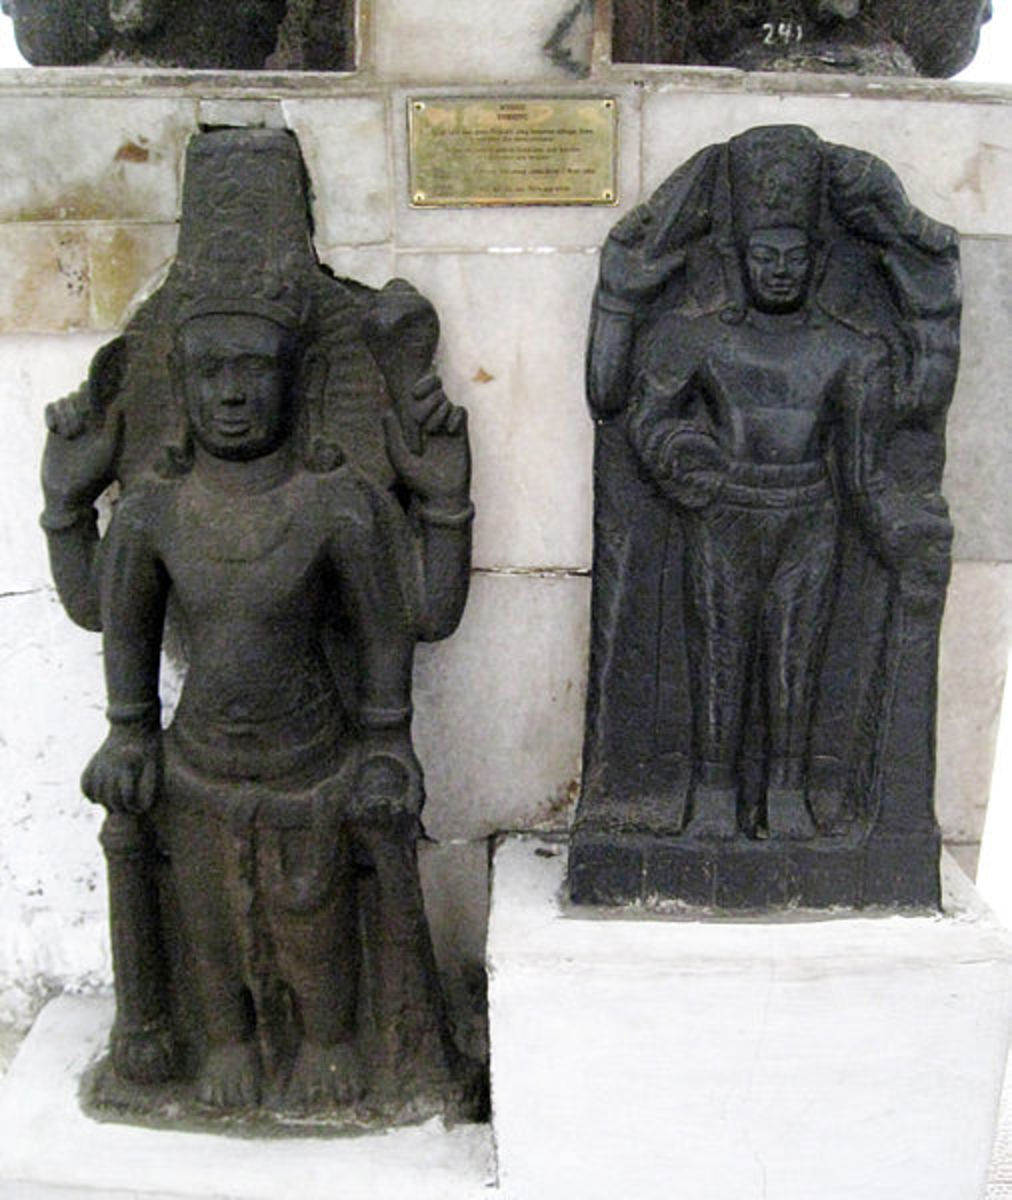 Two Vishnu statues from Cibuaya, Karawang, West Java. Tarumanagara c. 7th-8th century CE. The tubular crown bears similarities with Cambodian Khmer art.